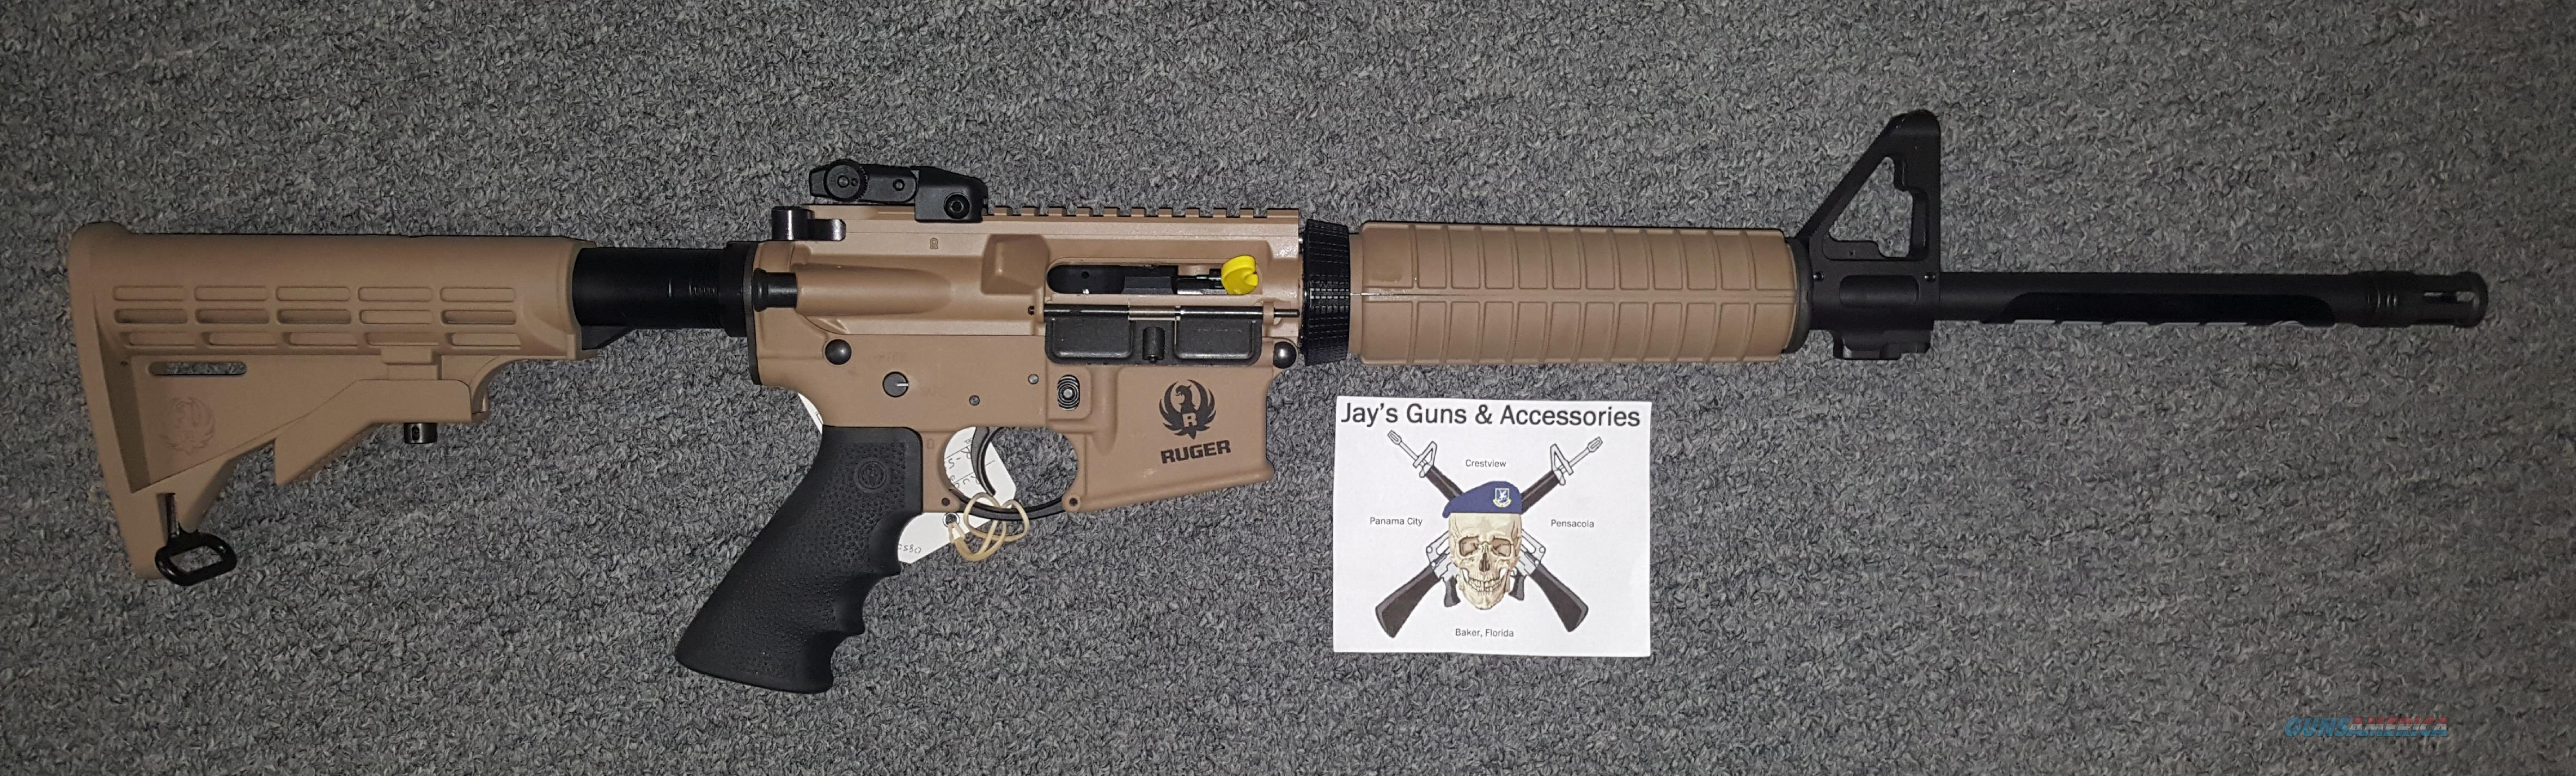 Ruger AR-556 (08503) w/Patriot Brown Finish  Guns > Rifles > Ruger Rifles > AR Series